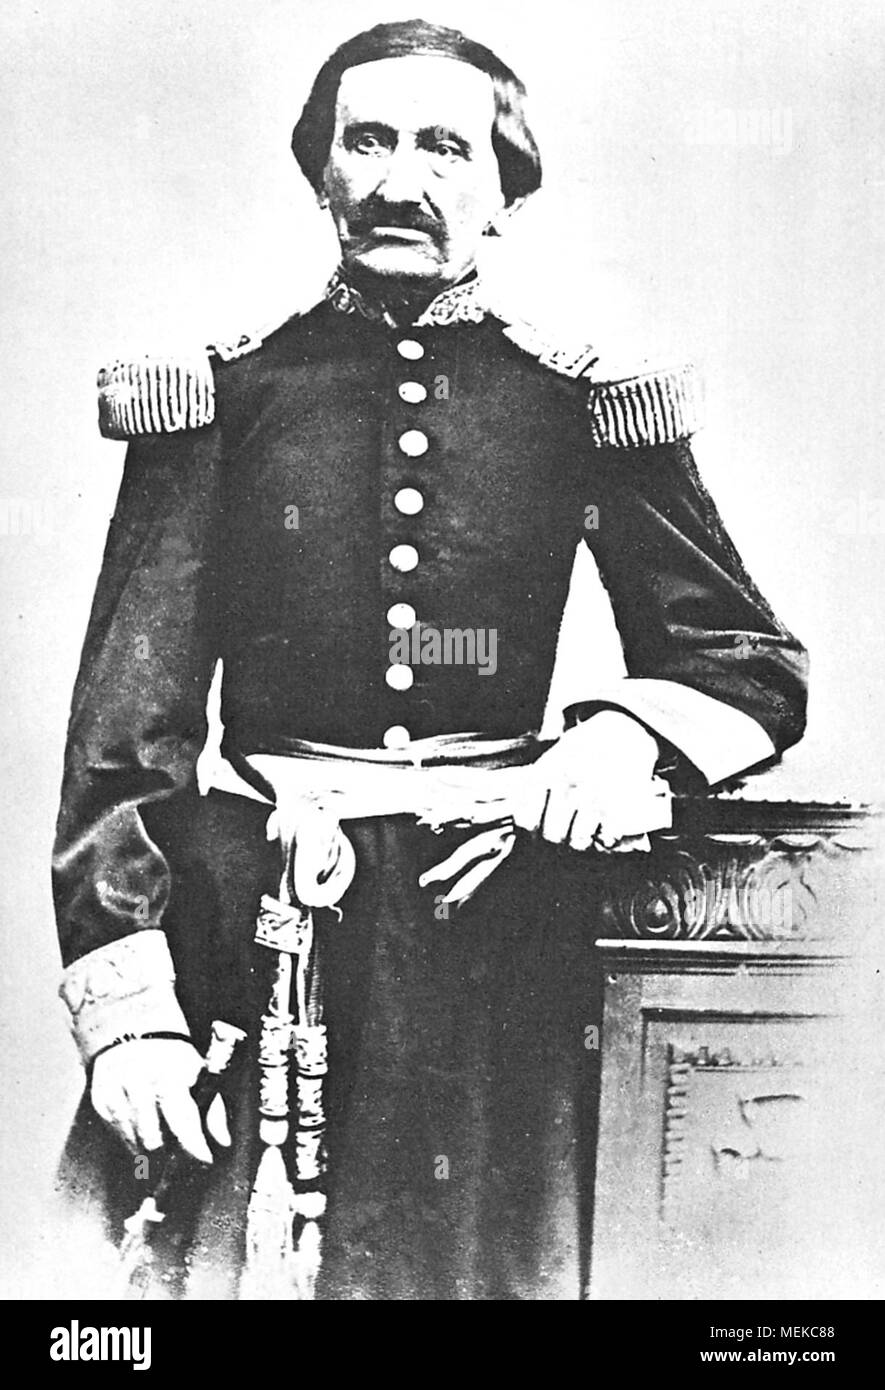 Antonio Gutiérrez de la Fuente (1796–1878) Peruvian politician who also served in the Peruvian military. He briefly served as the ninth President of Peru in June 7 – September 1, 1829. - Stock Image